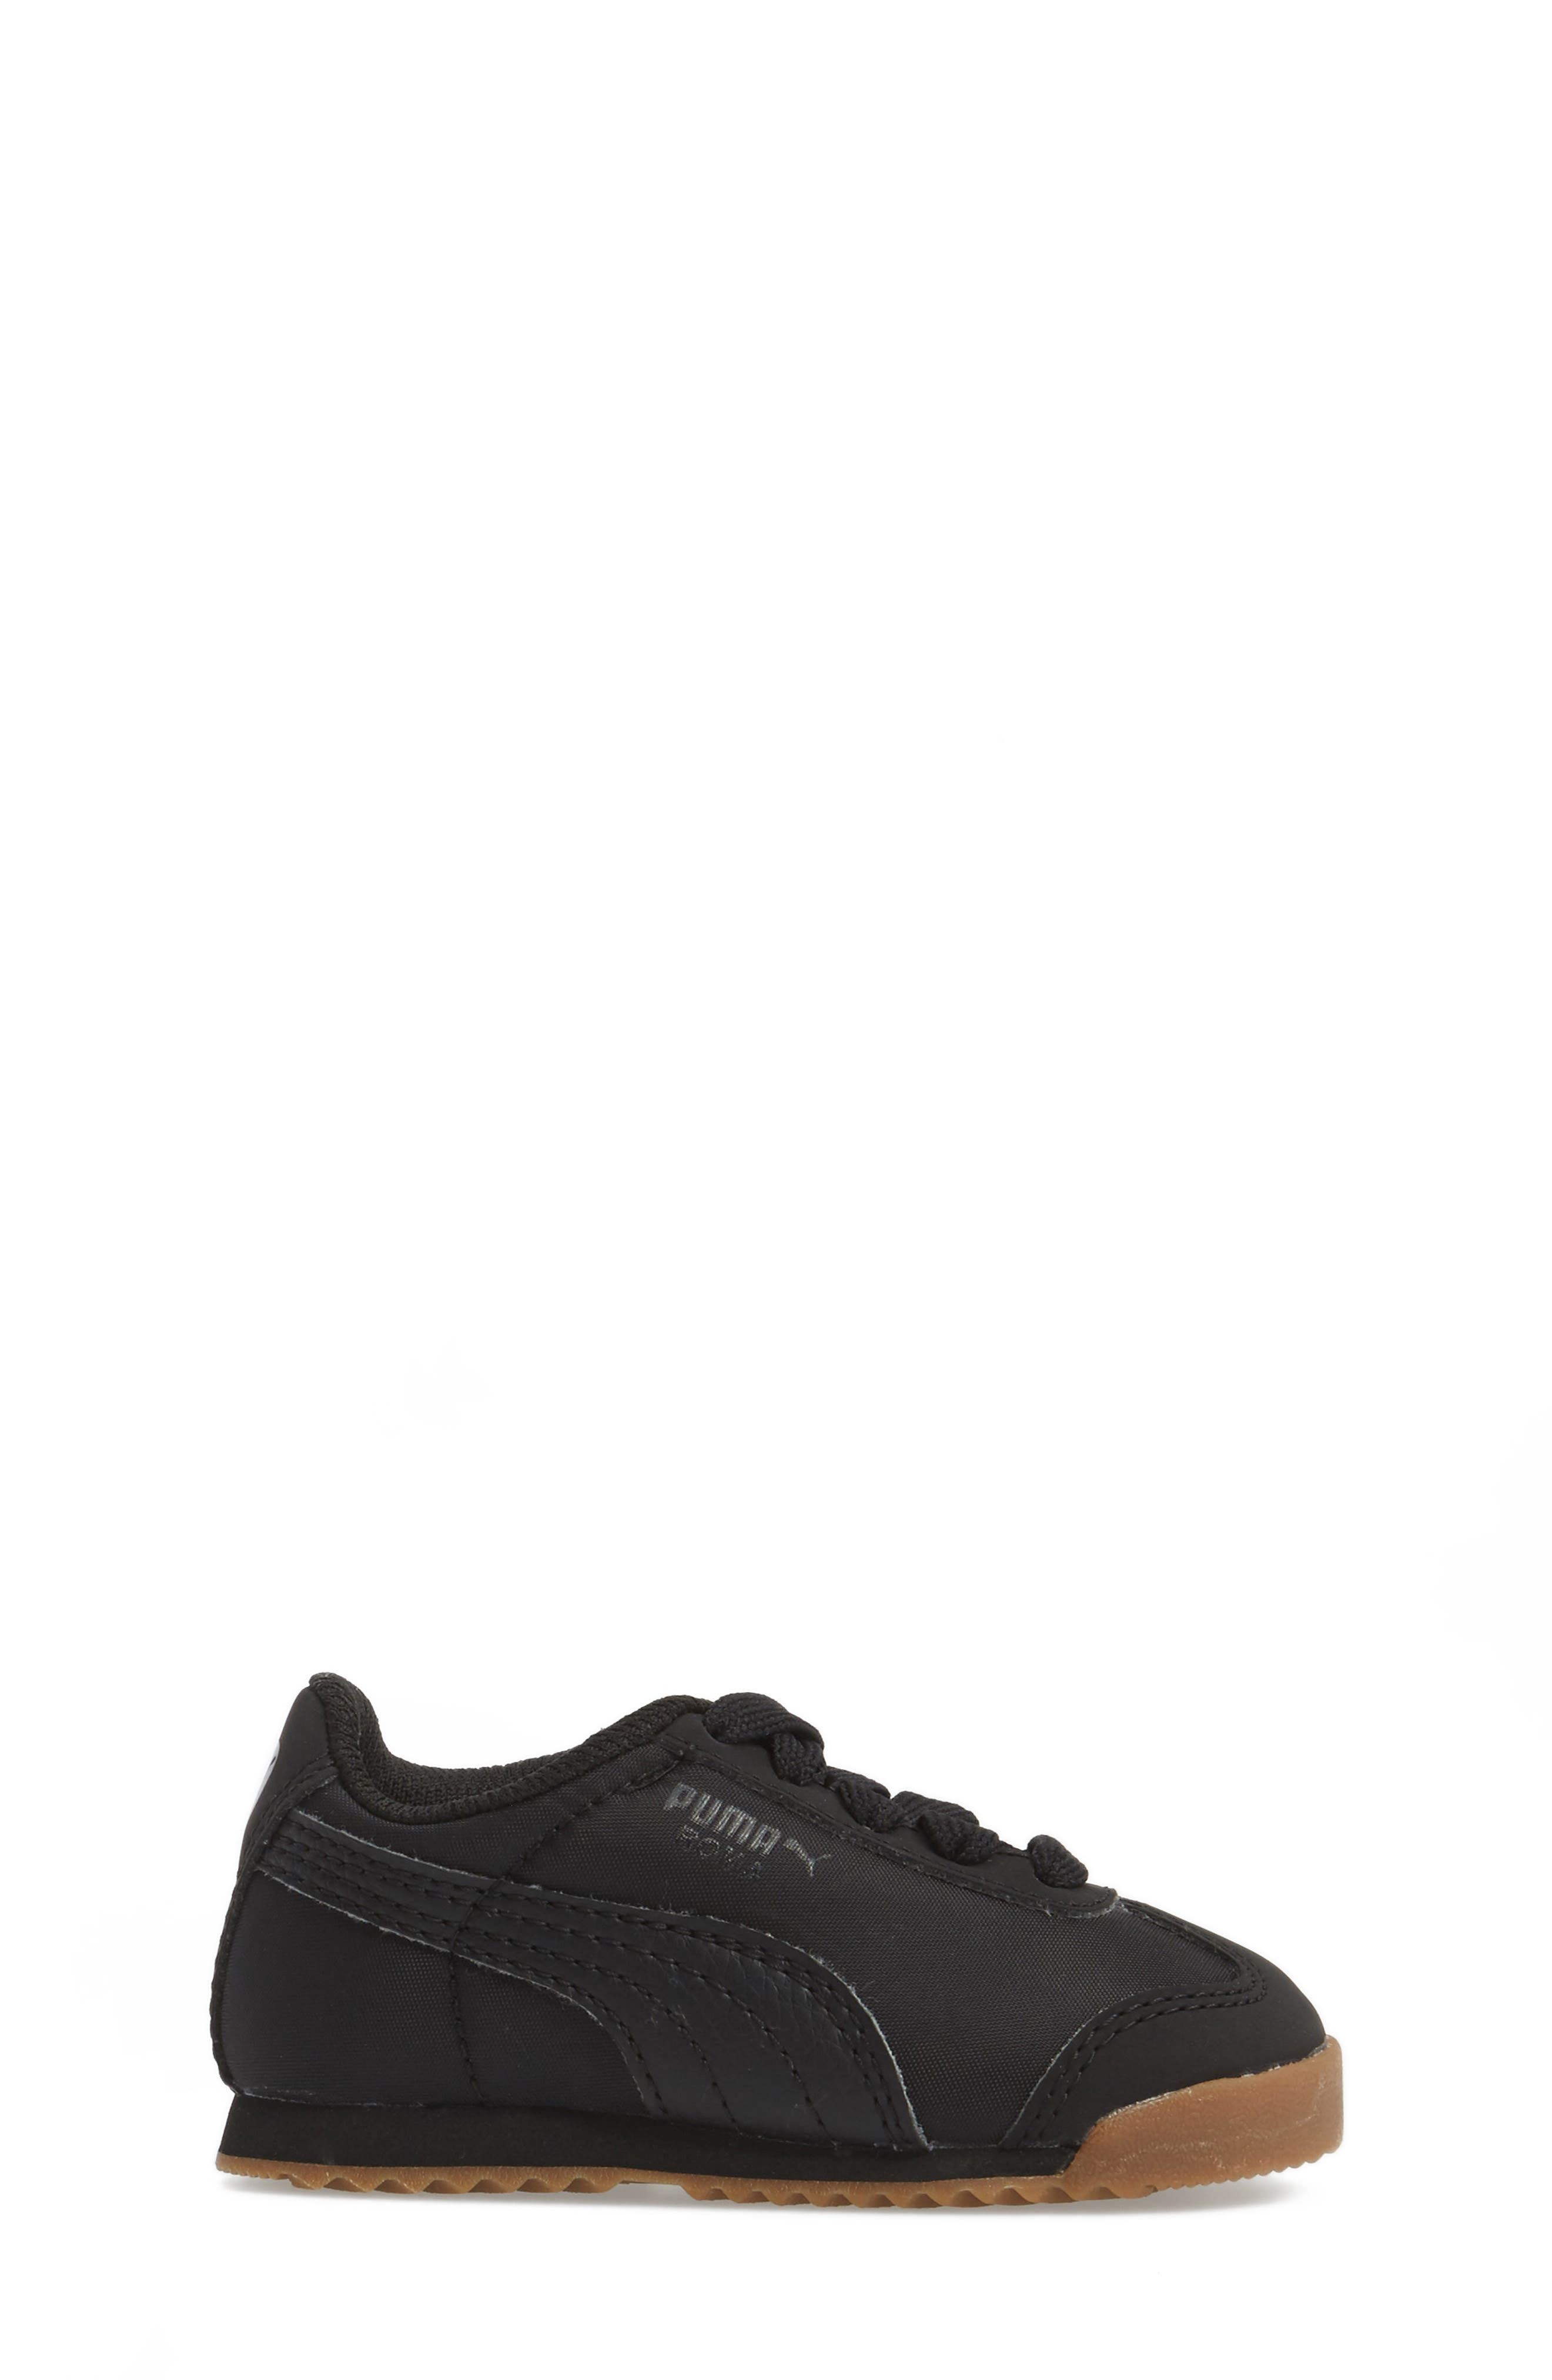 Roma Basic Summer Sneaker,                             Alternate thumbnail 5, color,